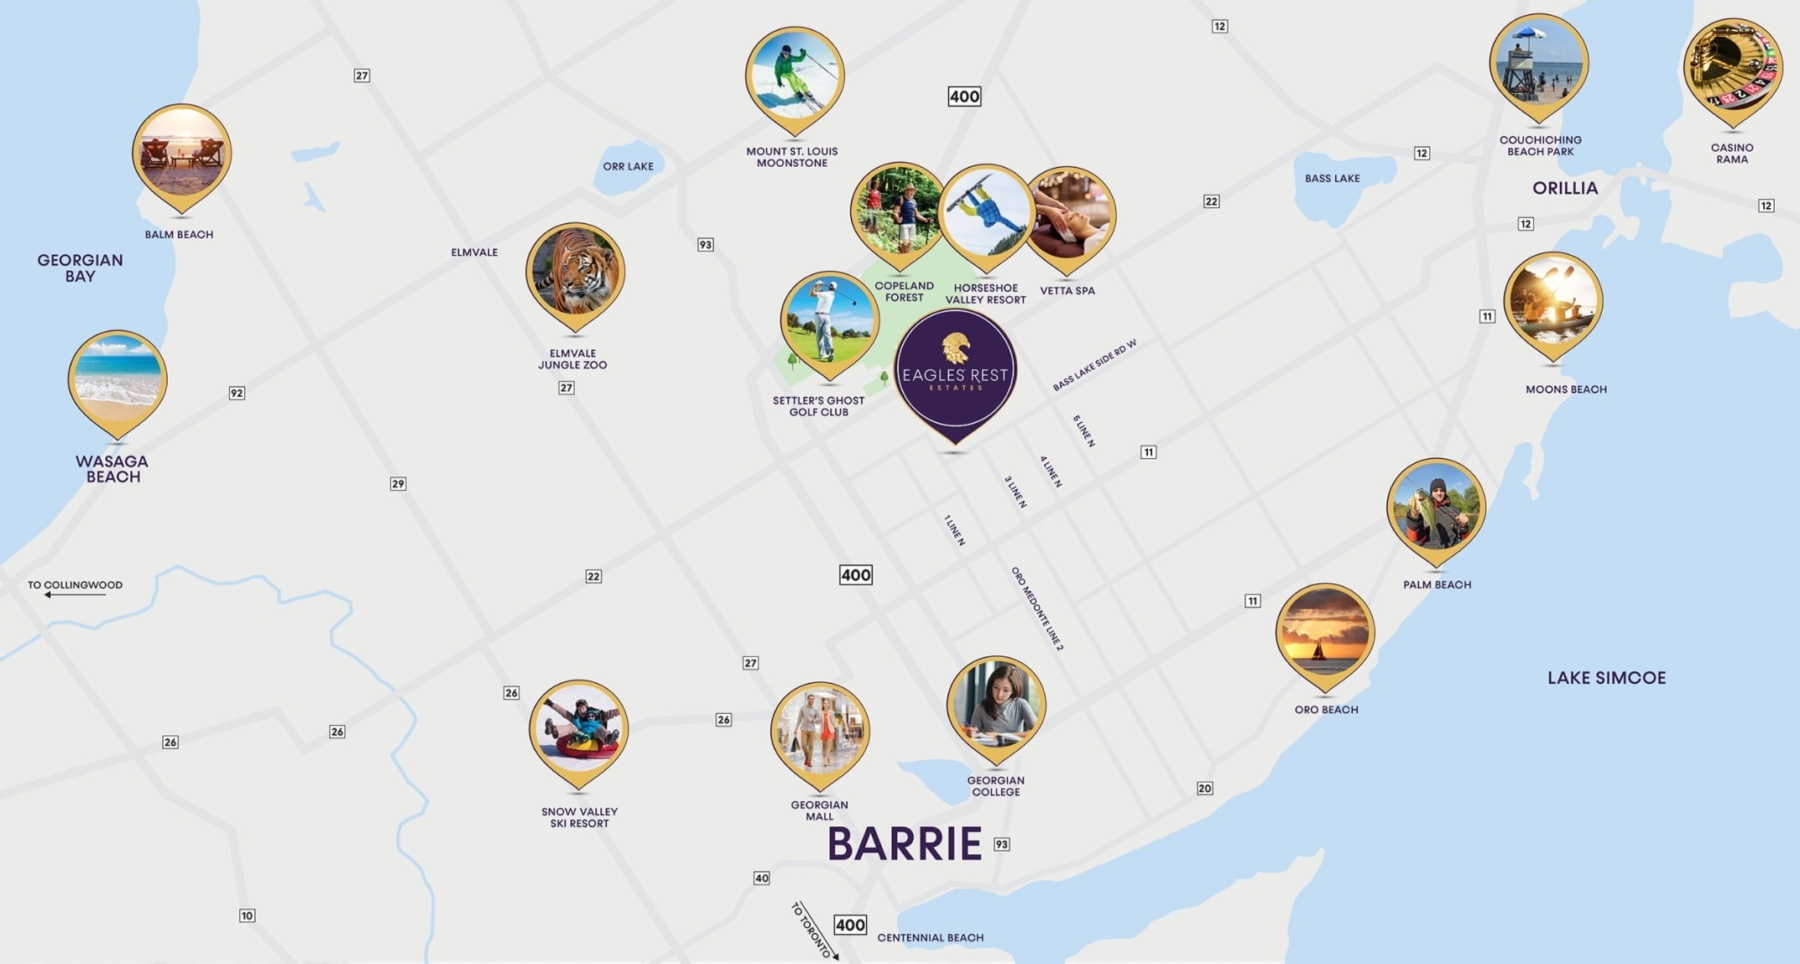 Map of Eagles' Rest Estates in Oro-Medonte, Barrie, Ontario